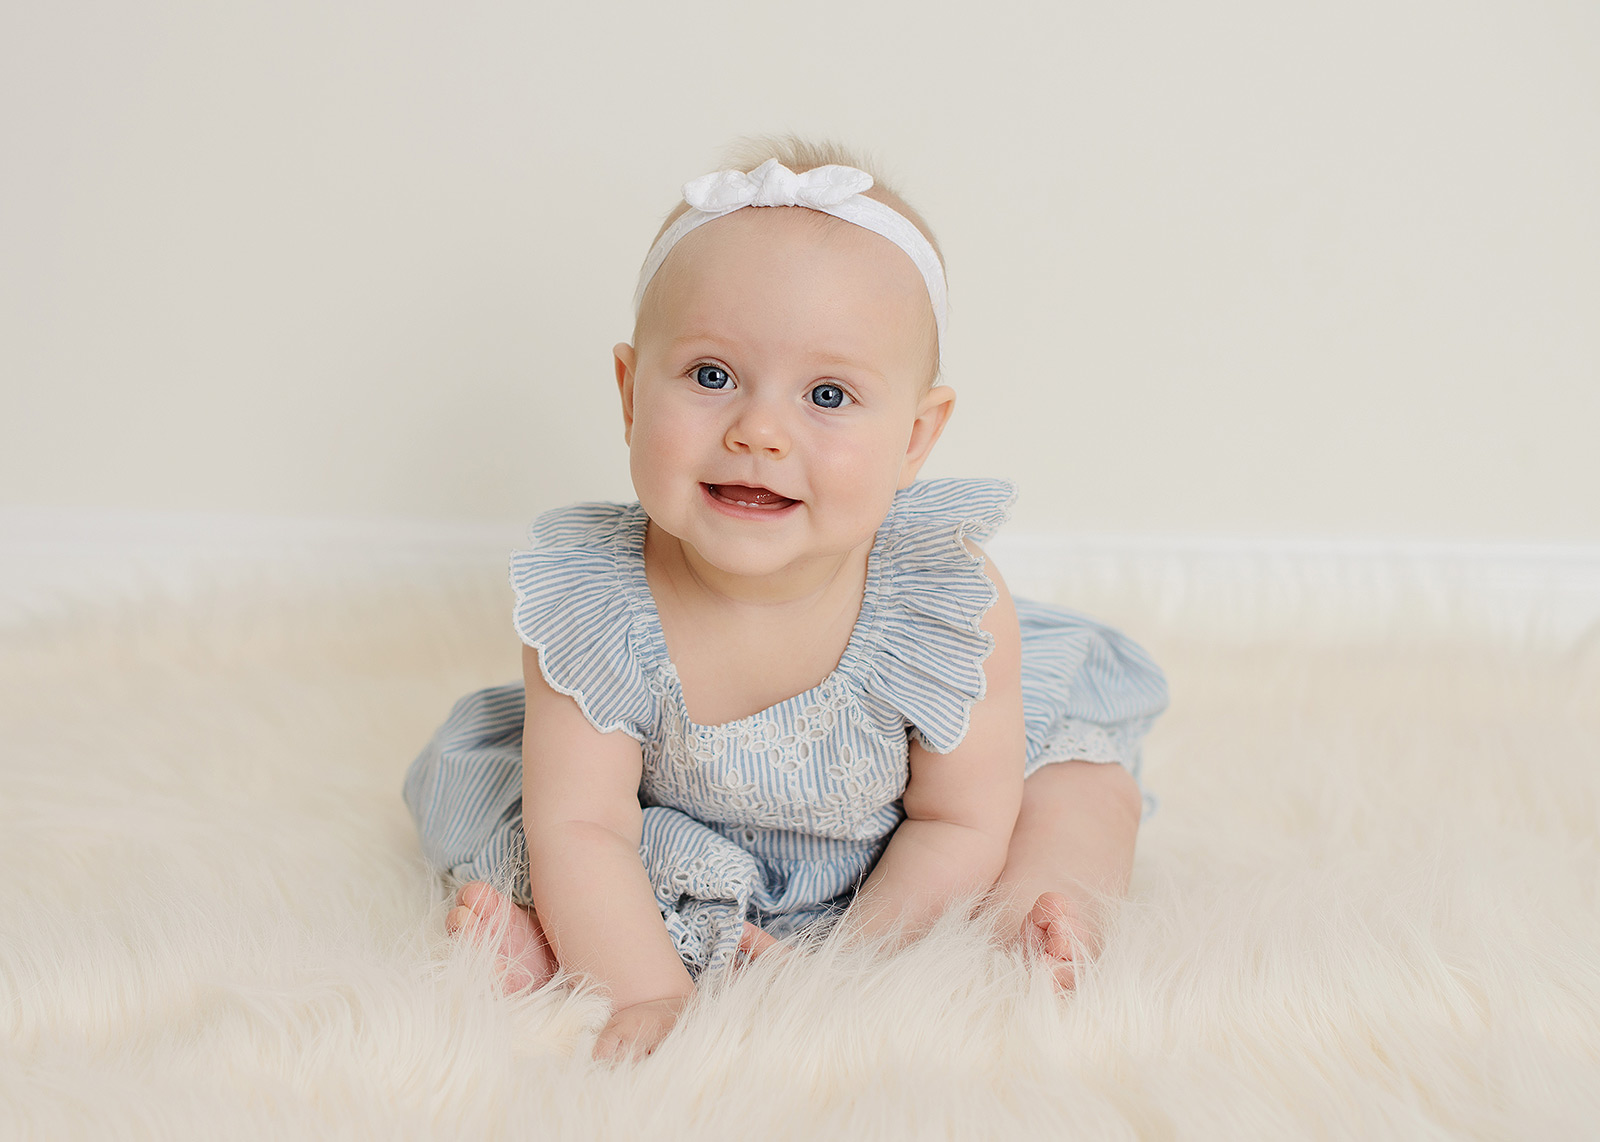 Baby Girl with Blue Eyes Sitting Up in Sacramento Studio